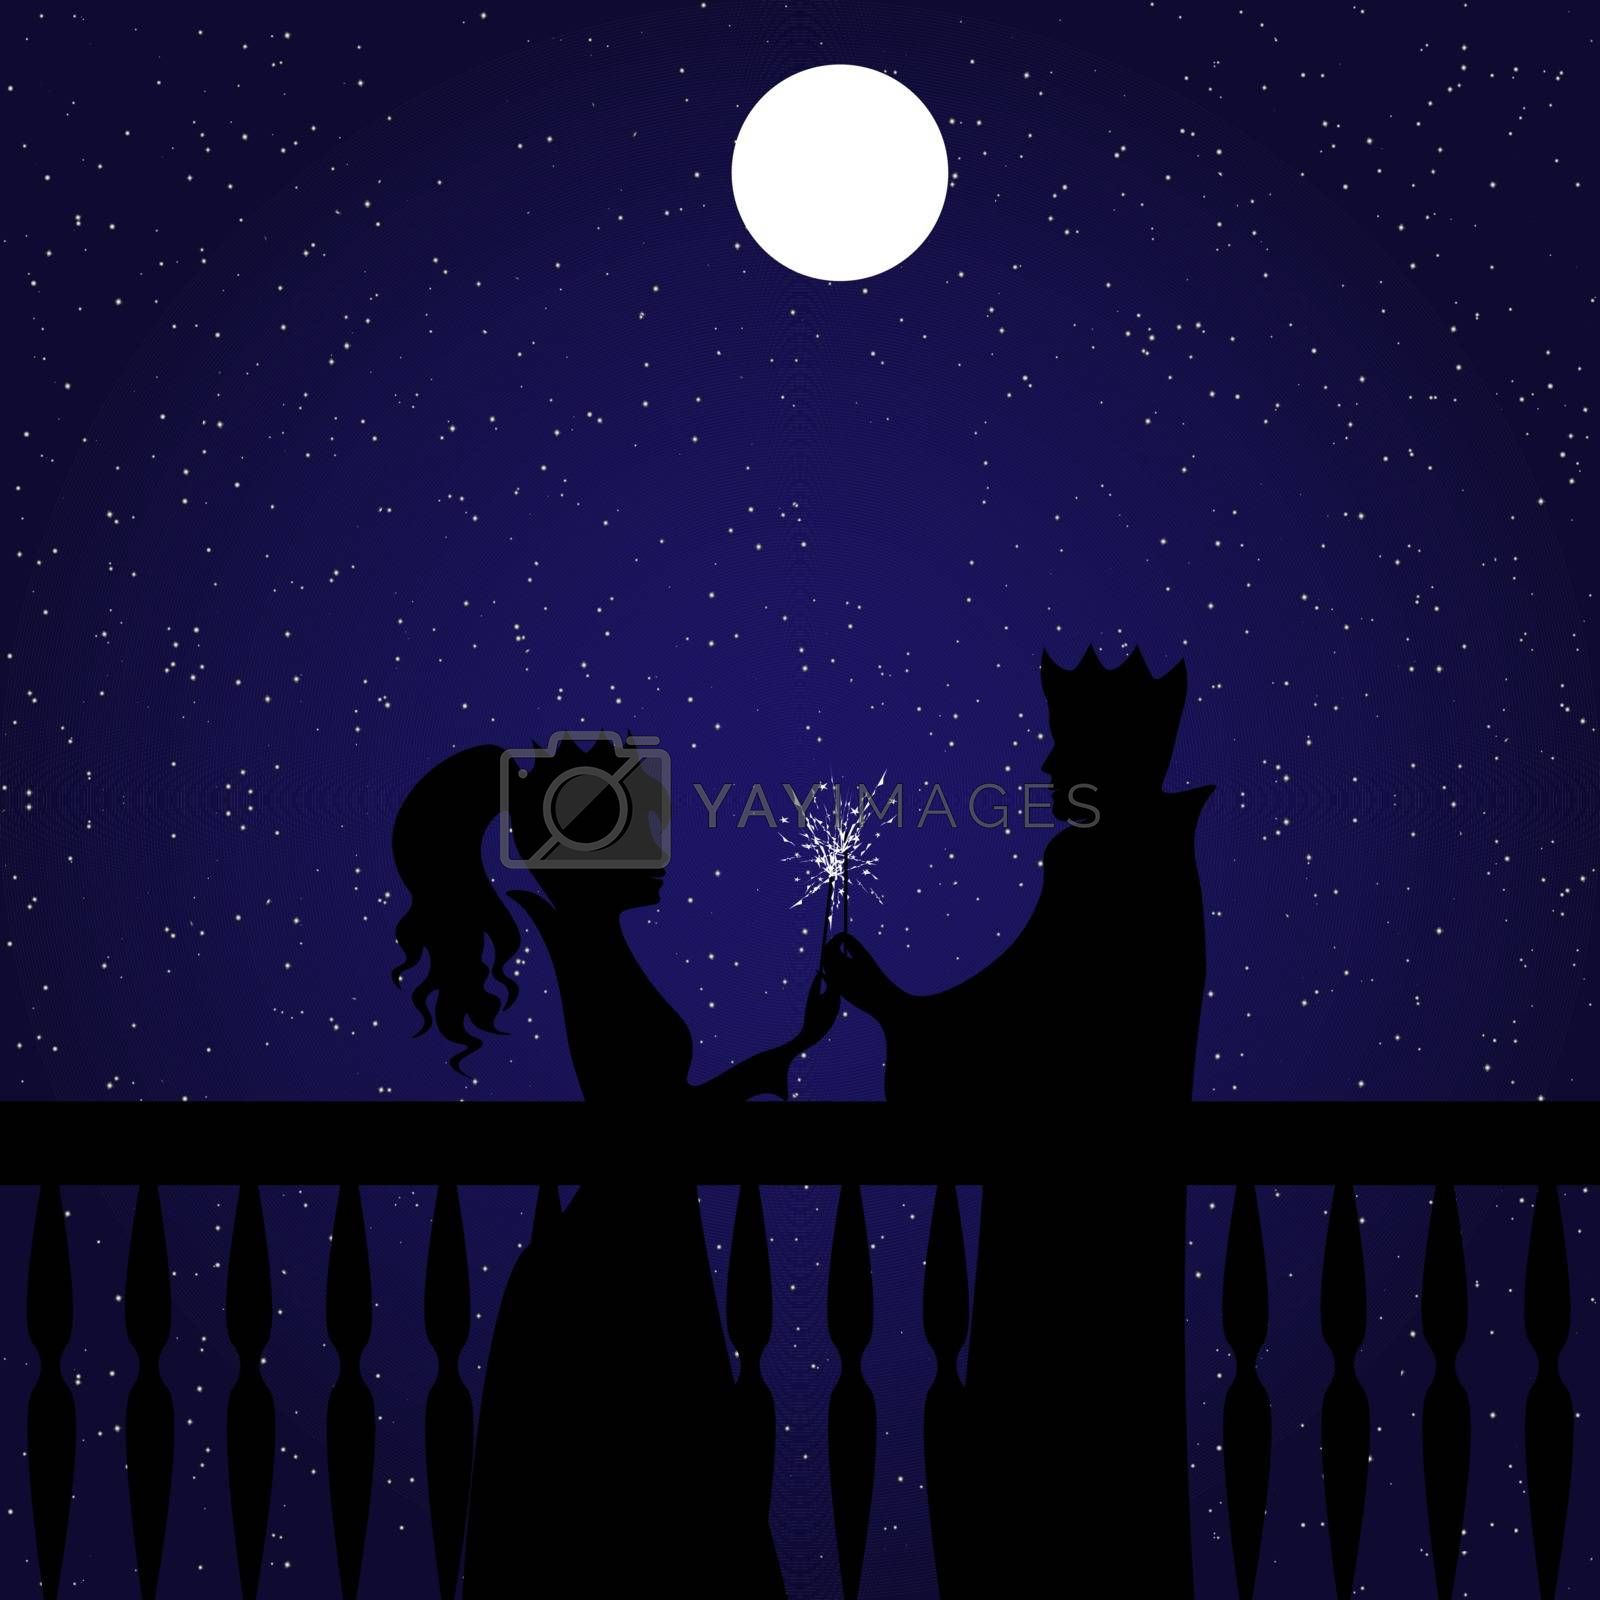 King and queen or prince and princess standing opposite each other and lighting sparklers. Full moon and starry night behind them.